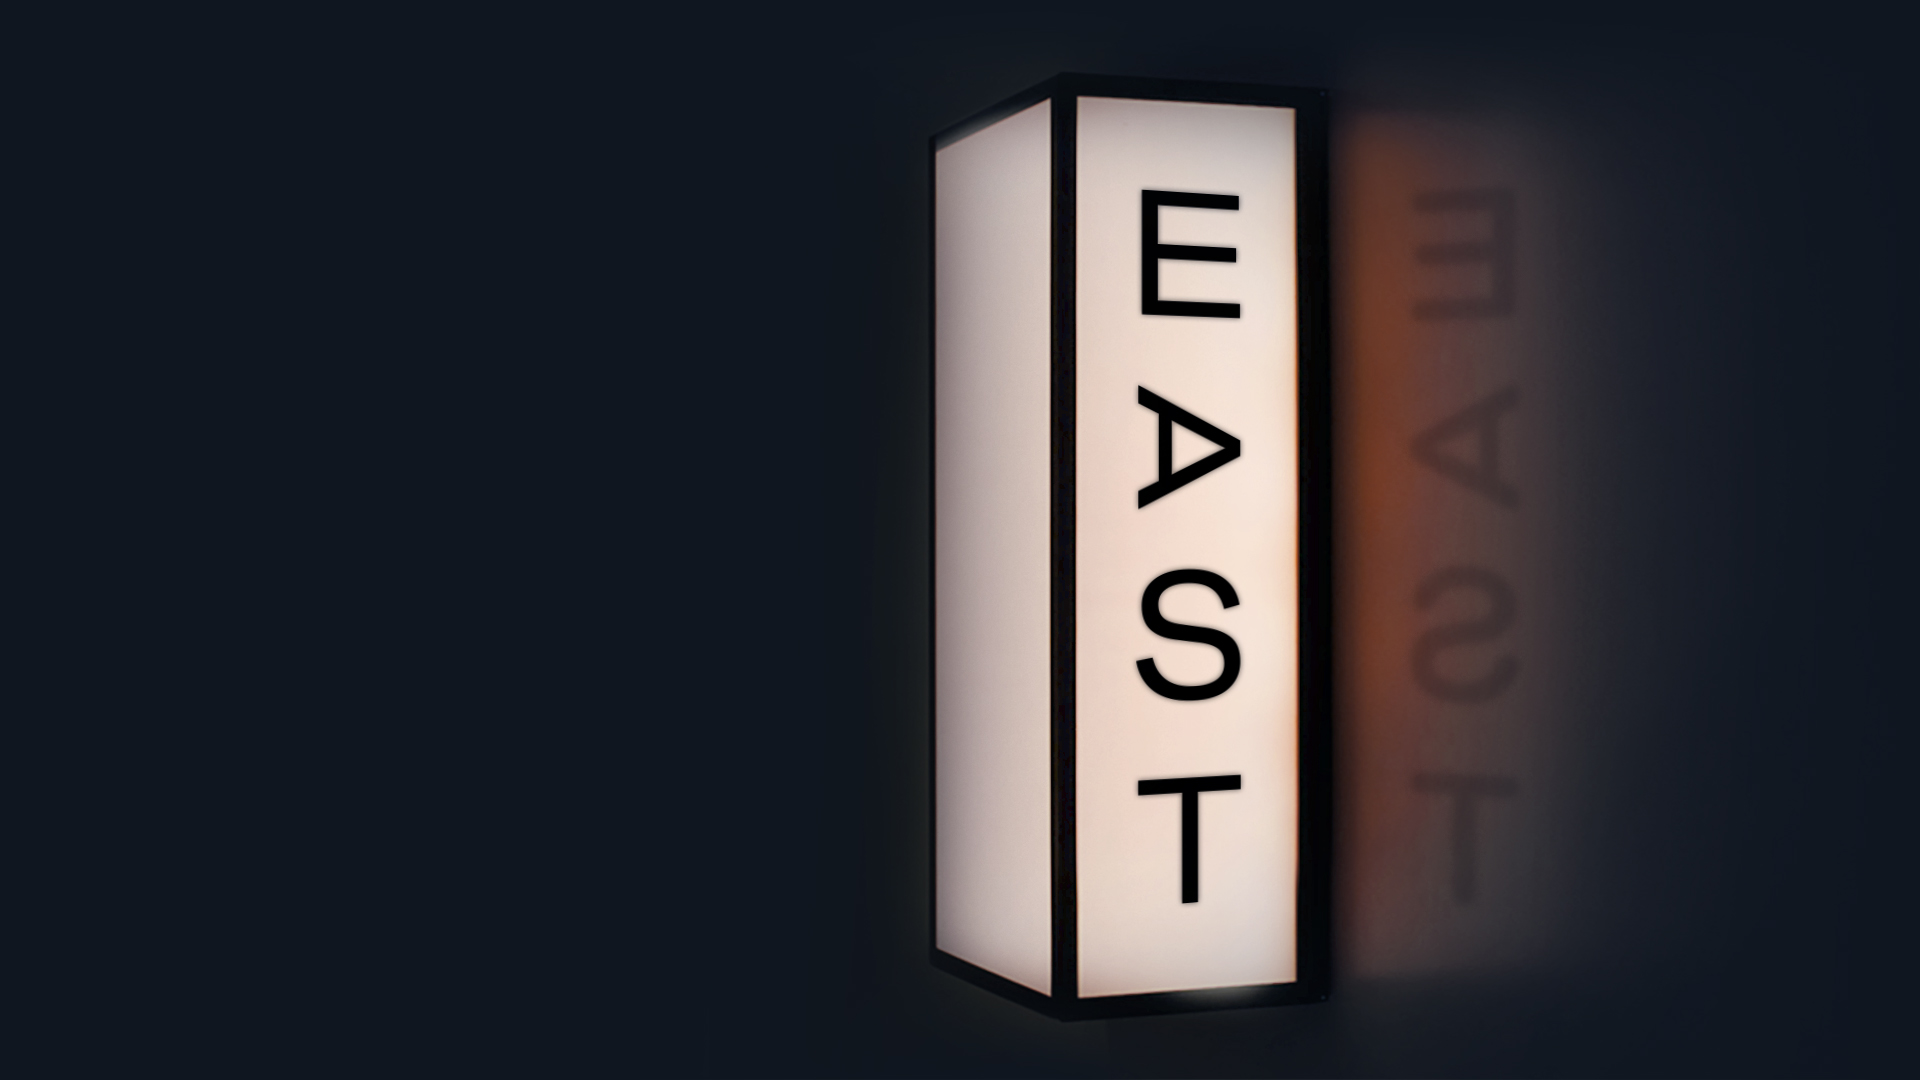 East-05-Sign